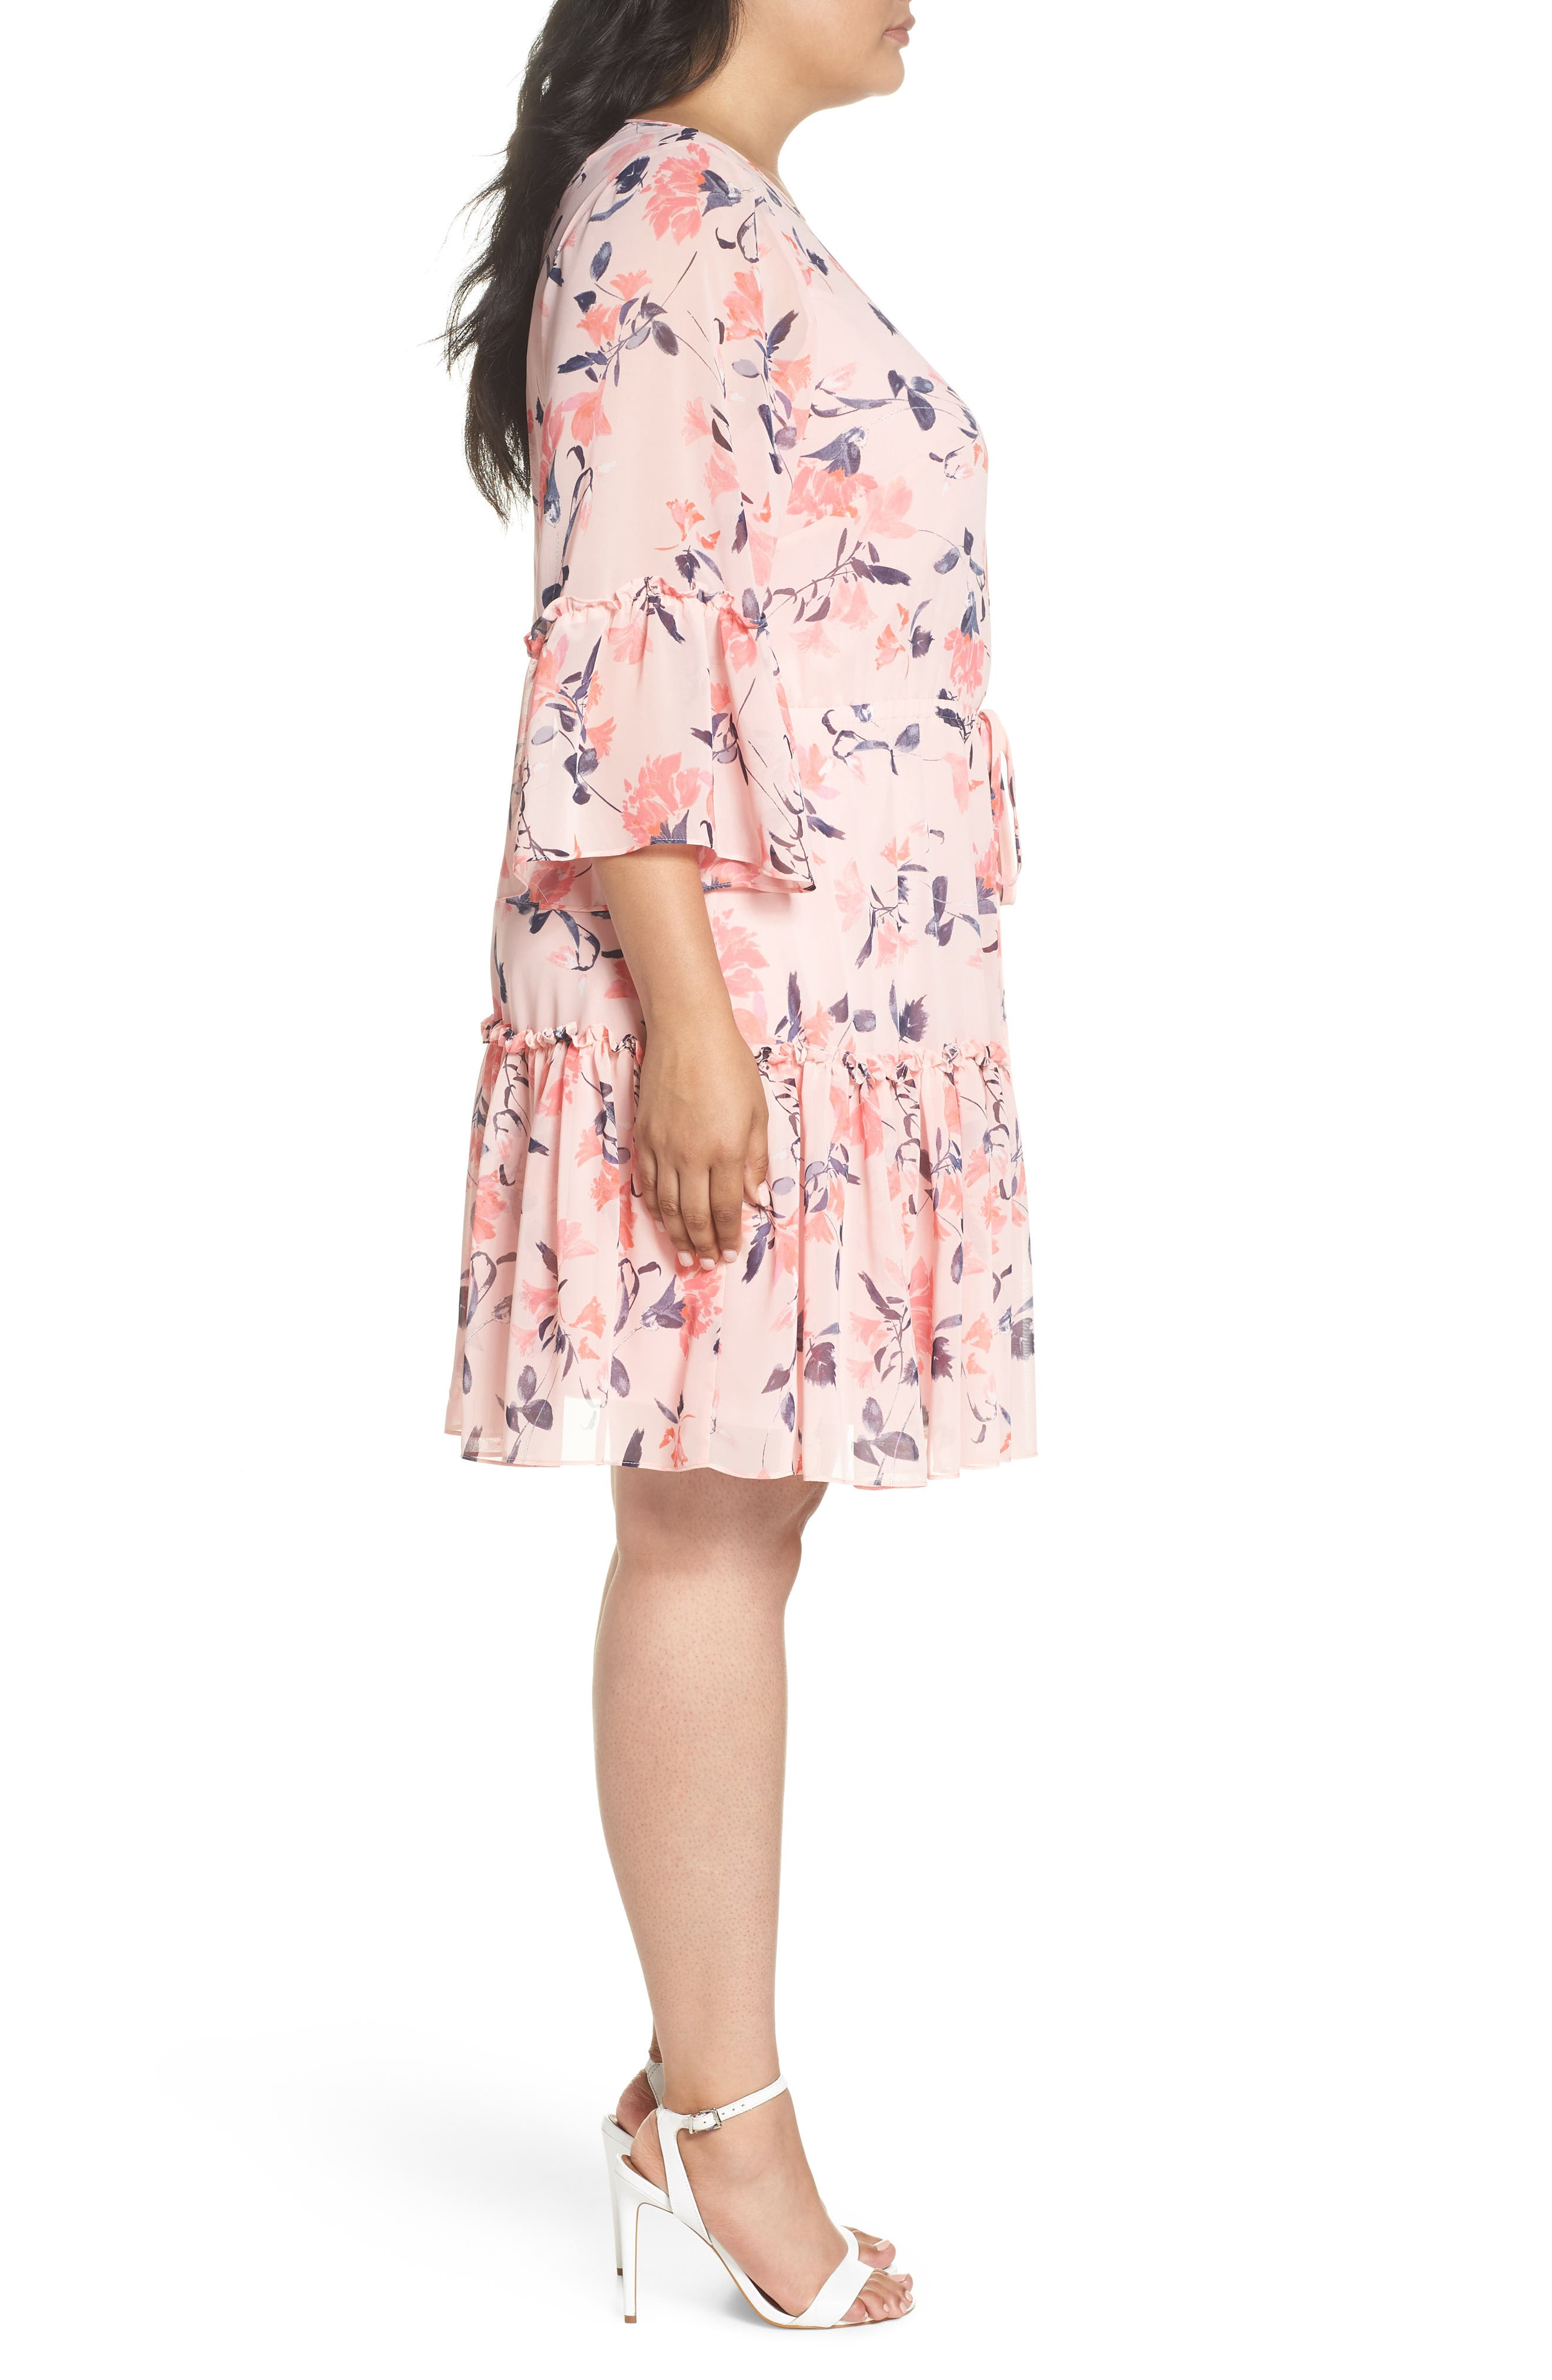 Elza J Floral Bell Sleeve Chiffon Dress,                             Alternate thumbnail 3, color,                             684